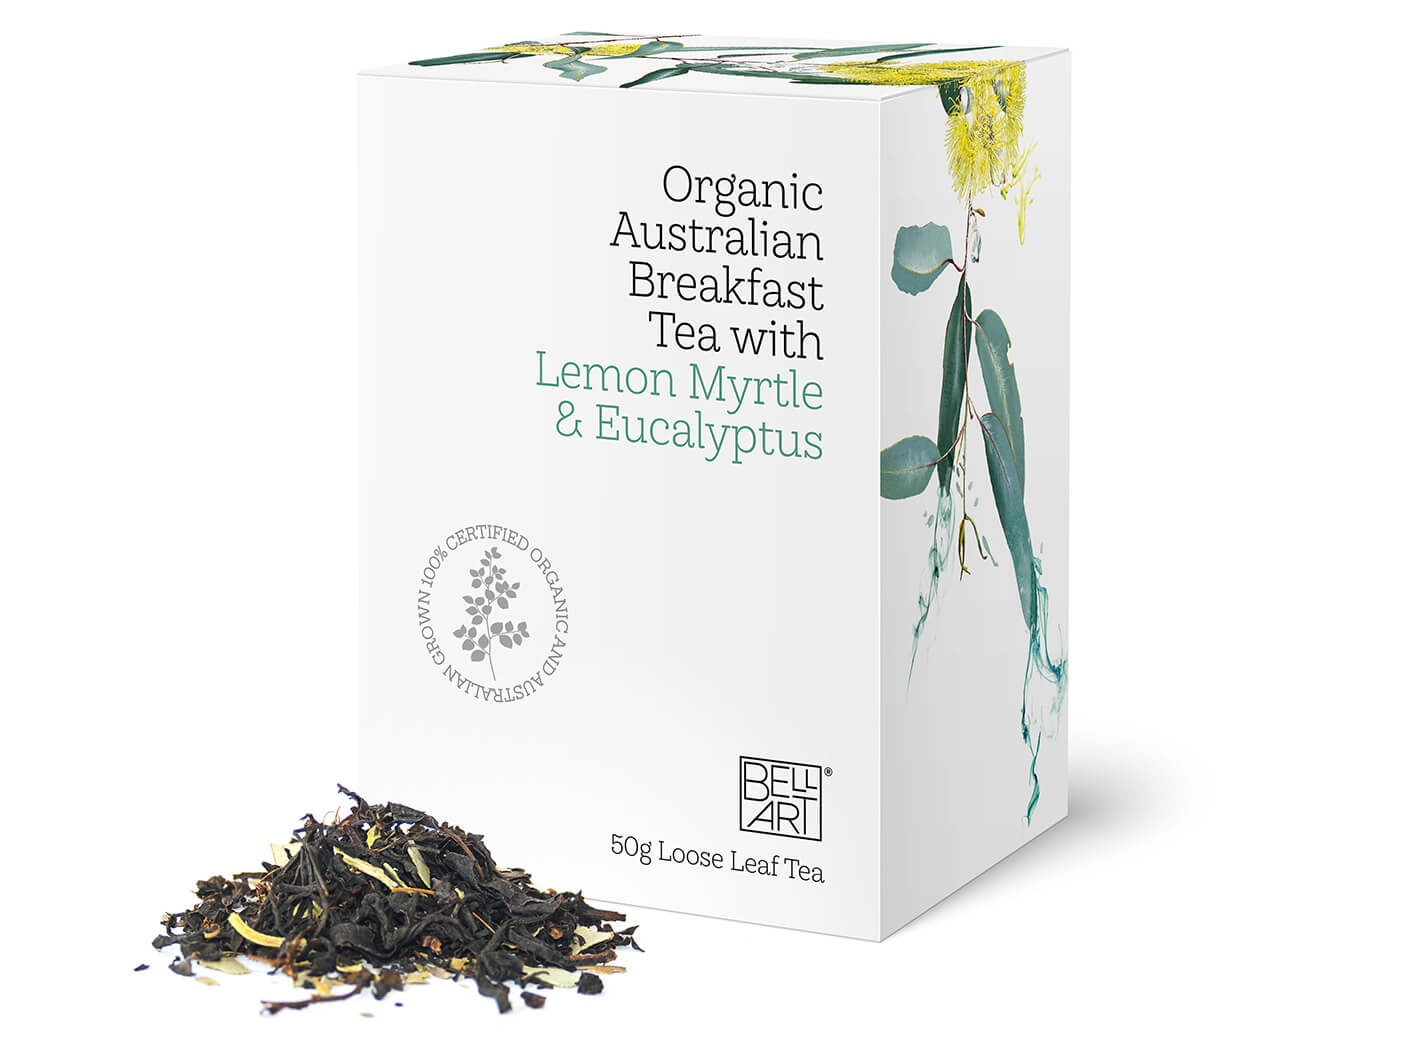 organic-australian-breakfast-tea-3